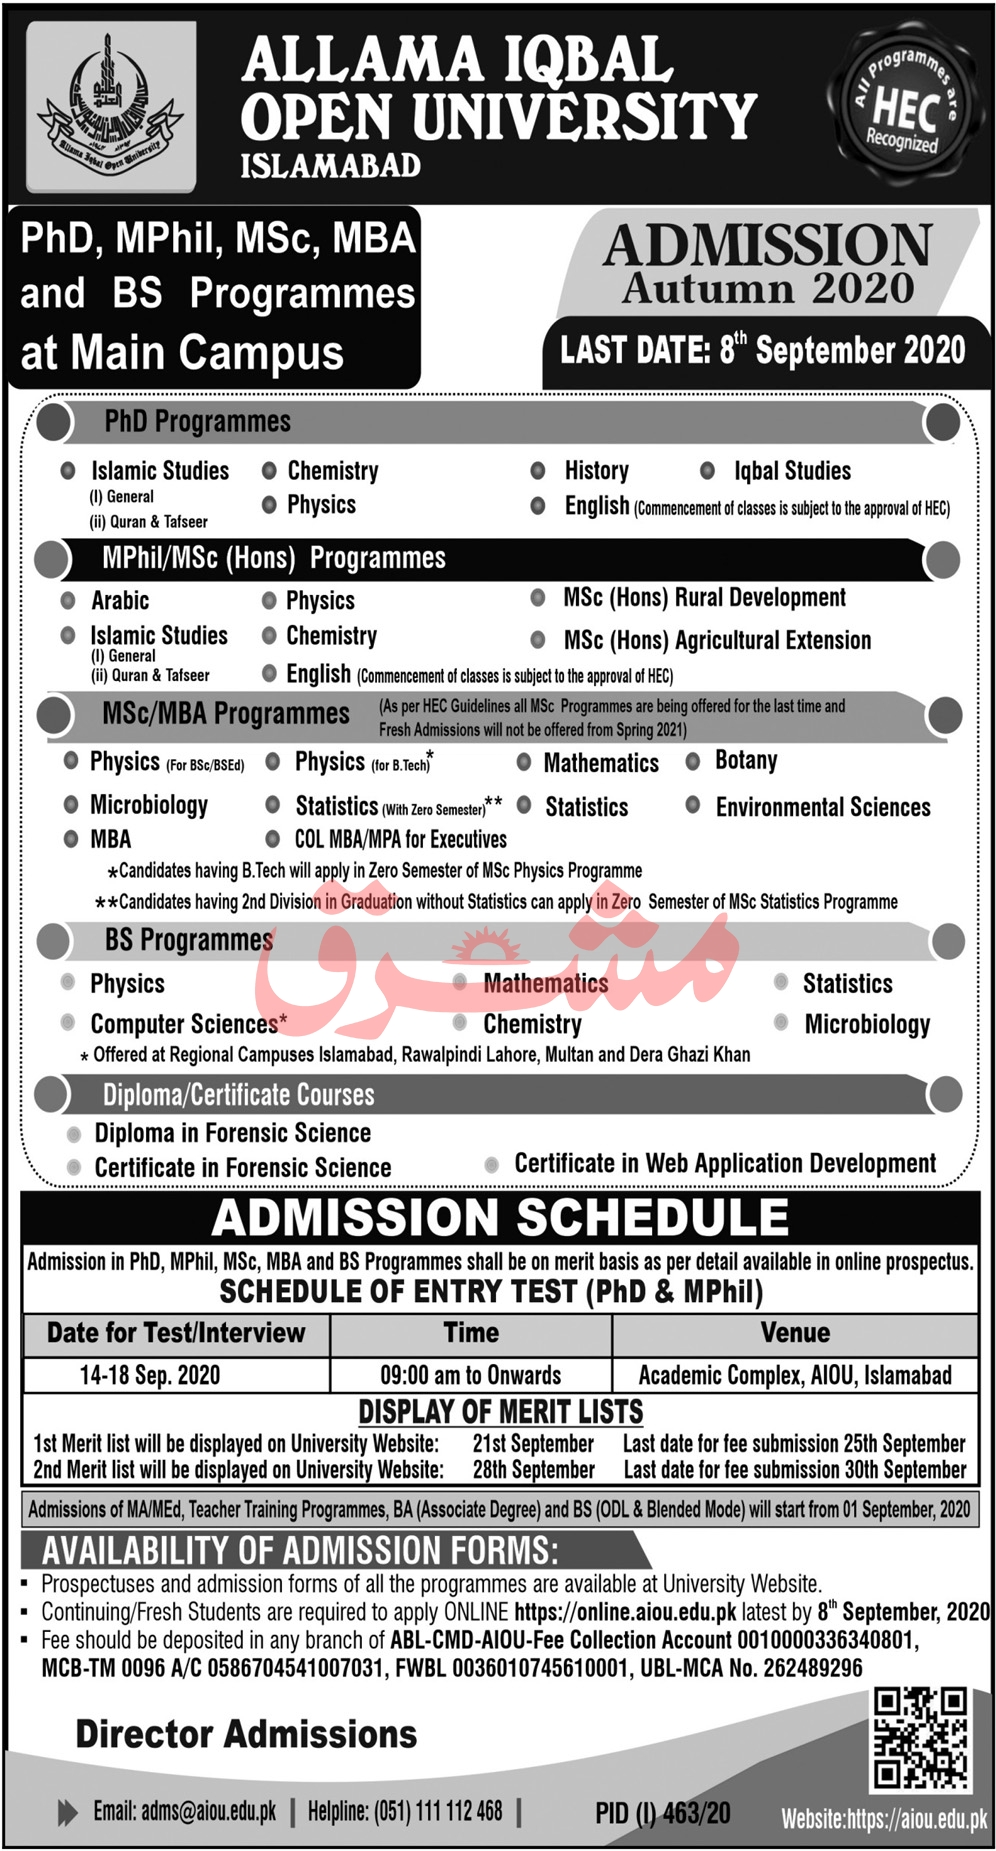 Allama Iqbal Open University Islamabad Admissions Autumn 2020